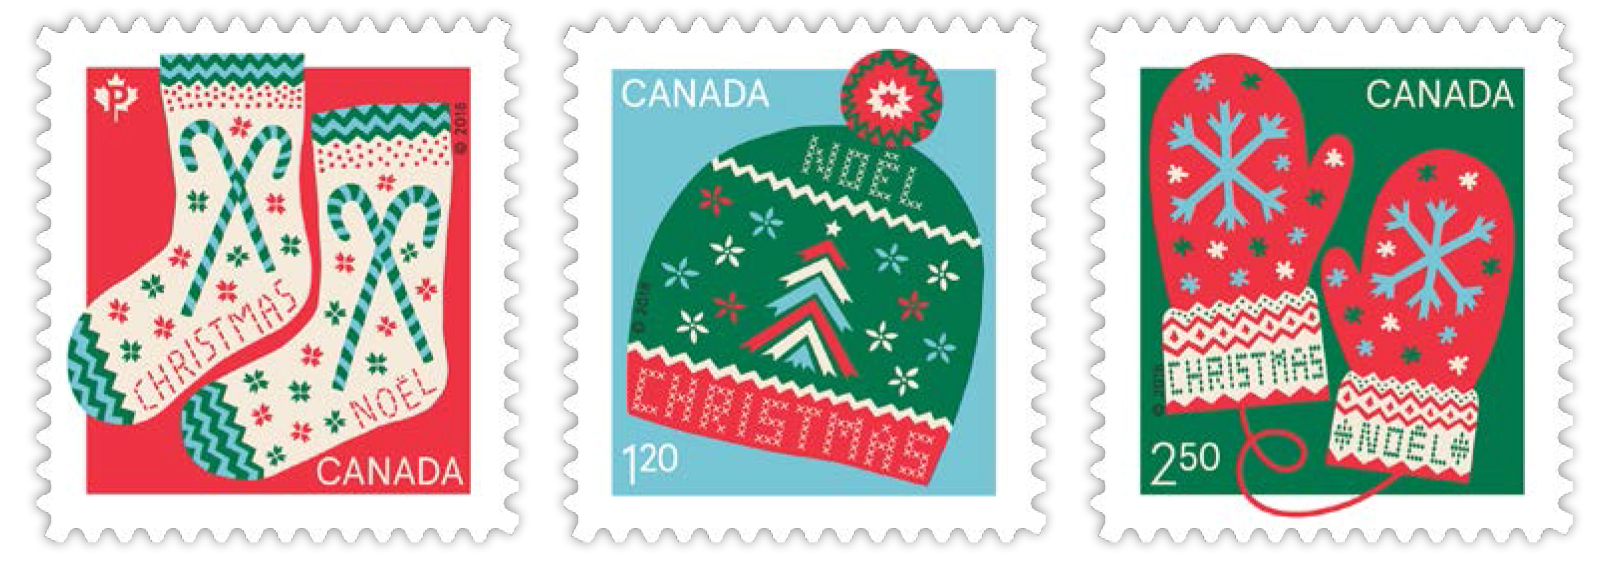 Sneak Preview of Canada Post's Coming Issues for 2019